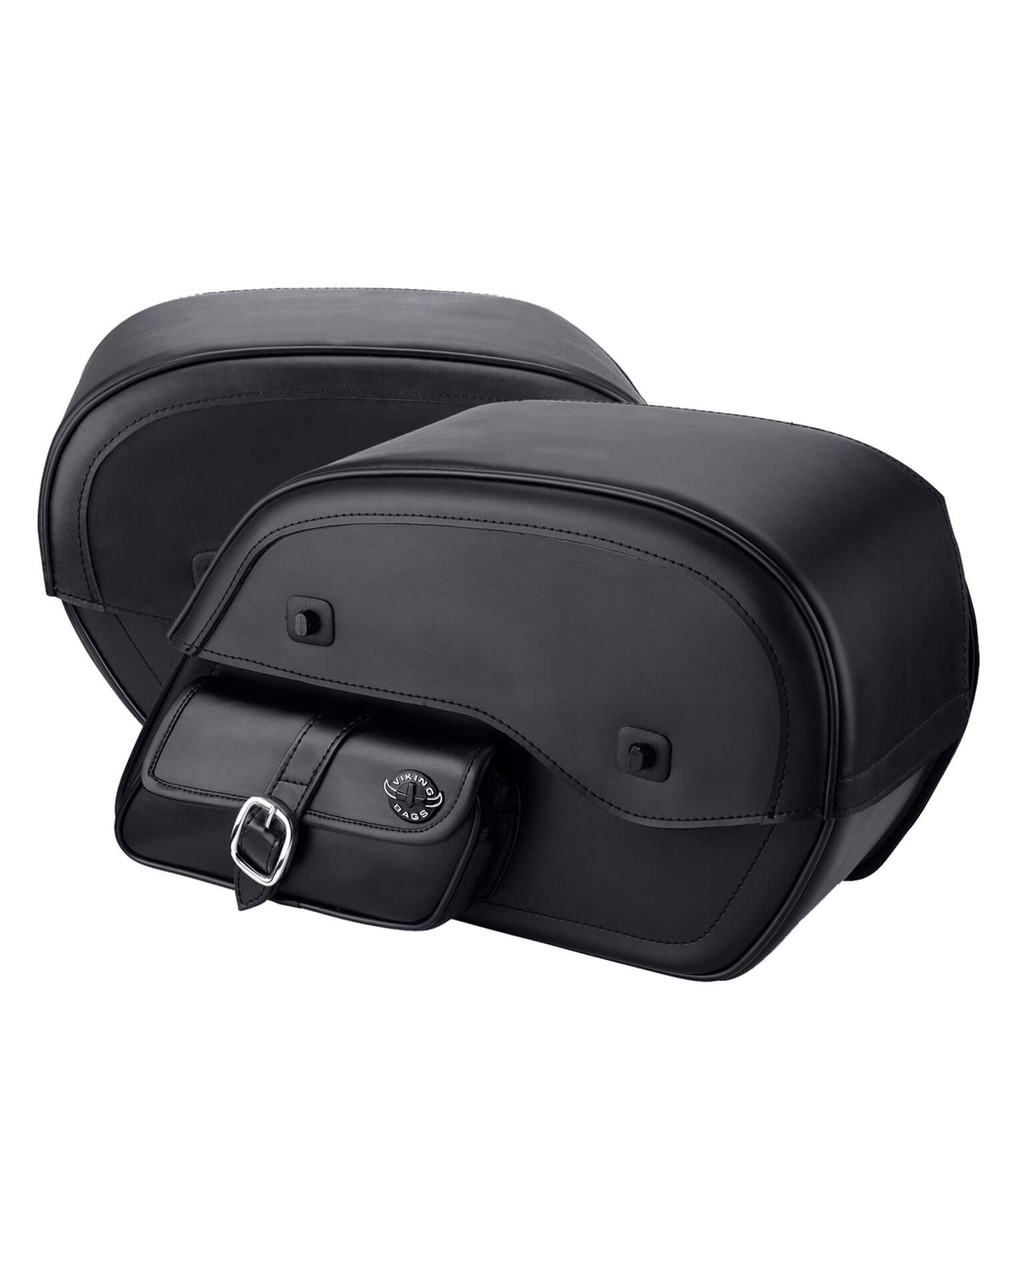 Viking SS Side Pocket Large Motorcycle Saddlebags For Harley Softail Custom FXSTC Both Bags View